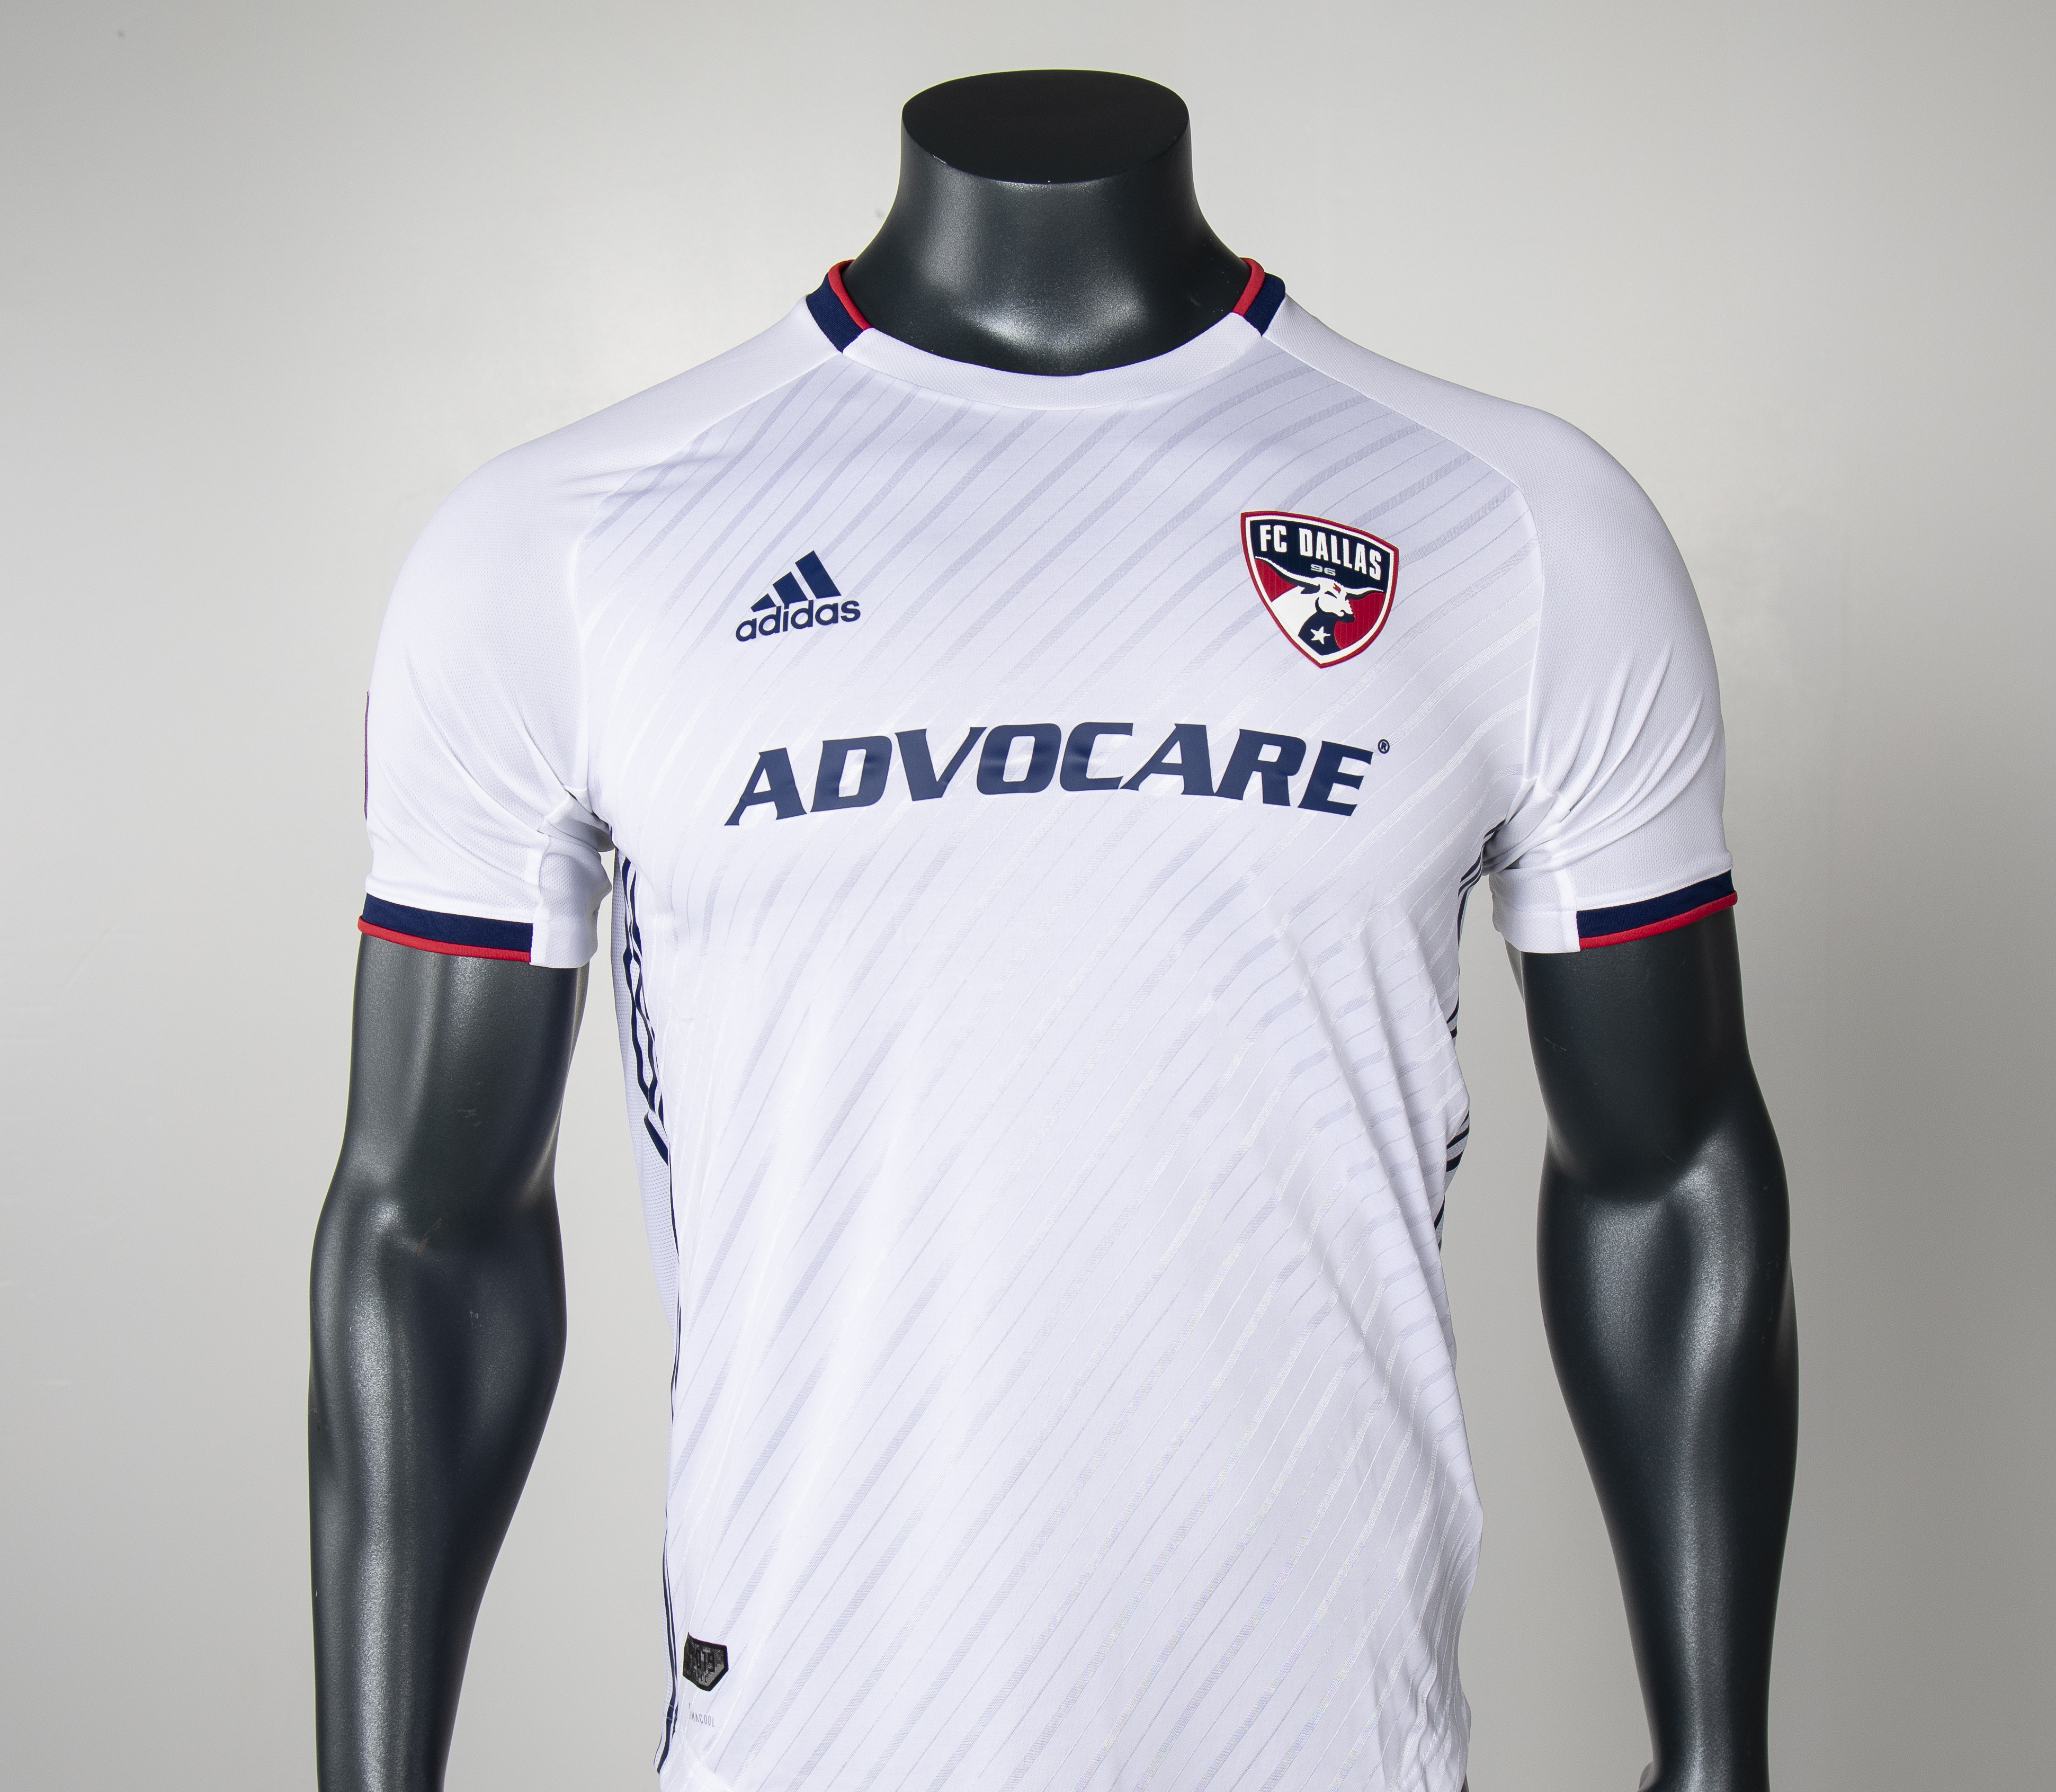 4e4ebfa28 Soccer  2019 FC Dallas  Reunion  kit revealed